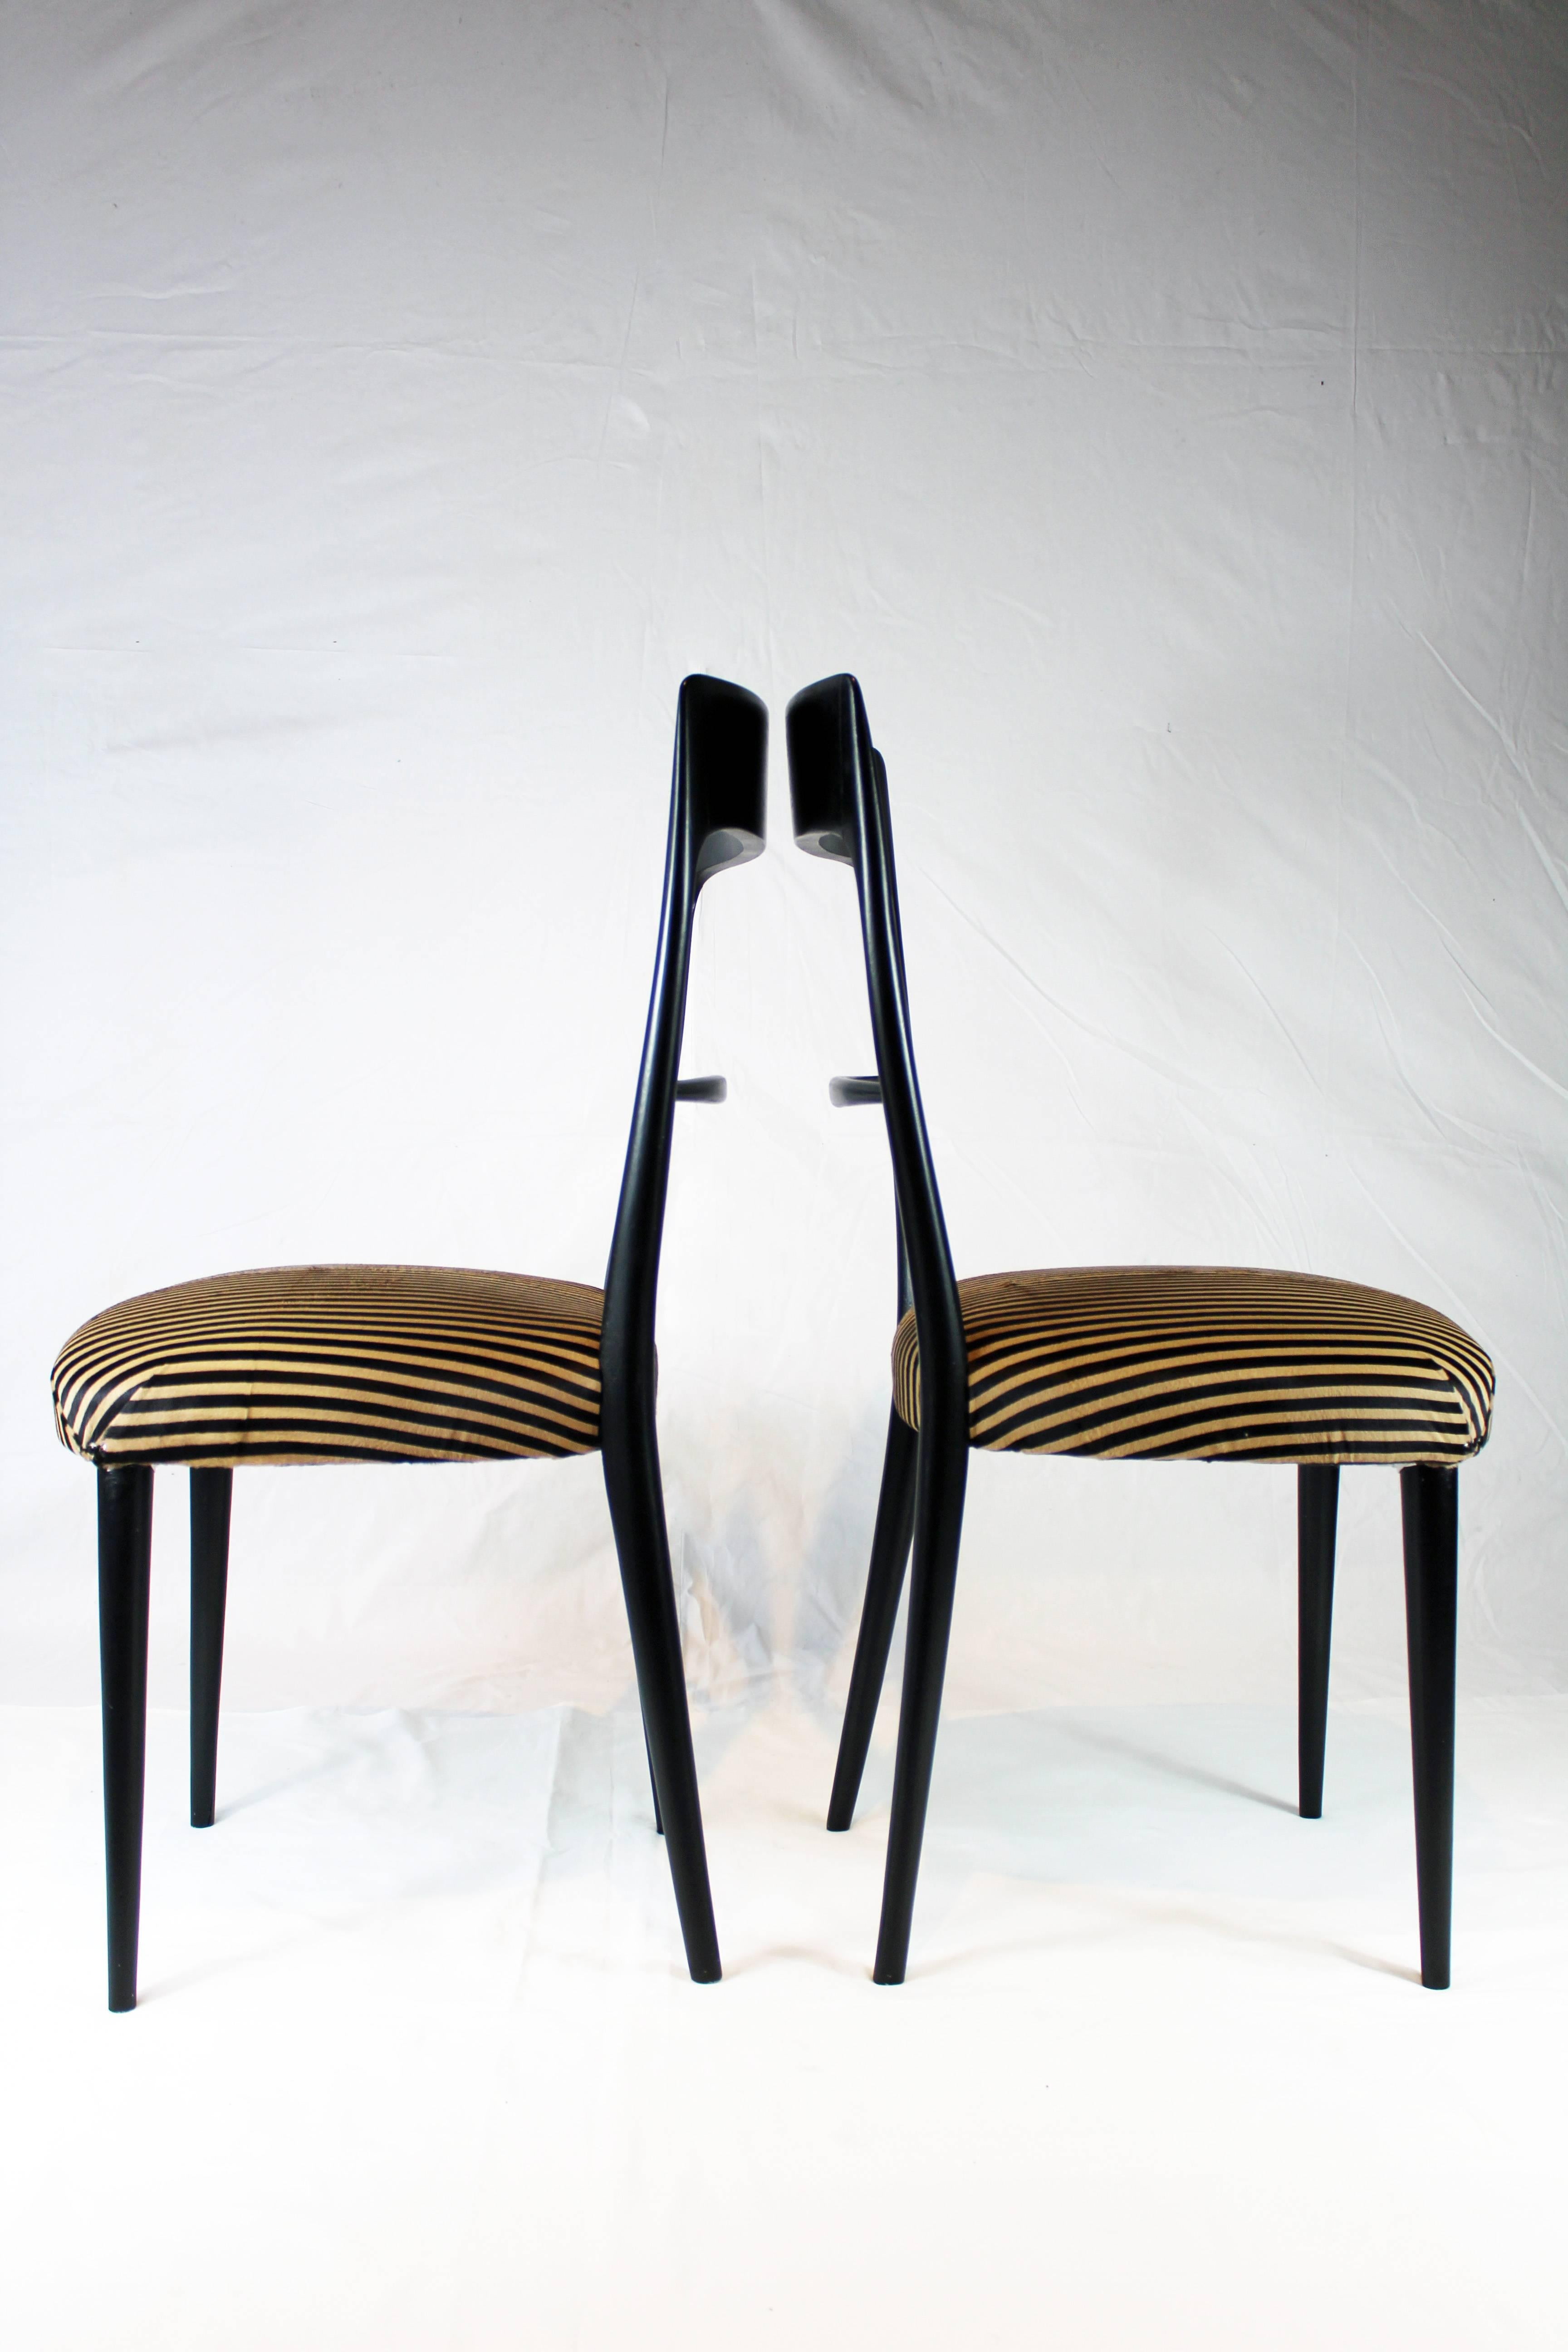 Exceptionnel Italian Black Wood Chairs With Horse Hair Cushion, 1950s For Sale 3